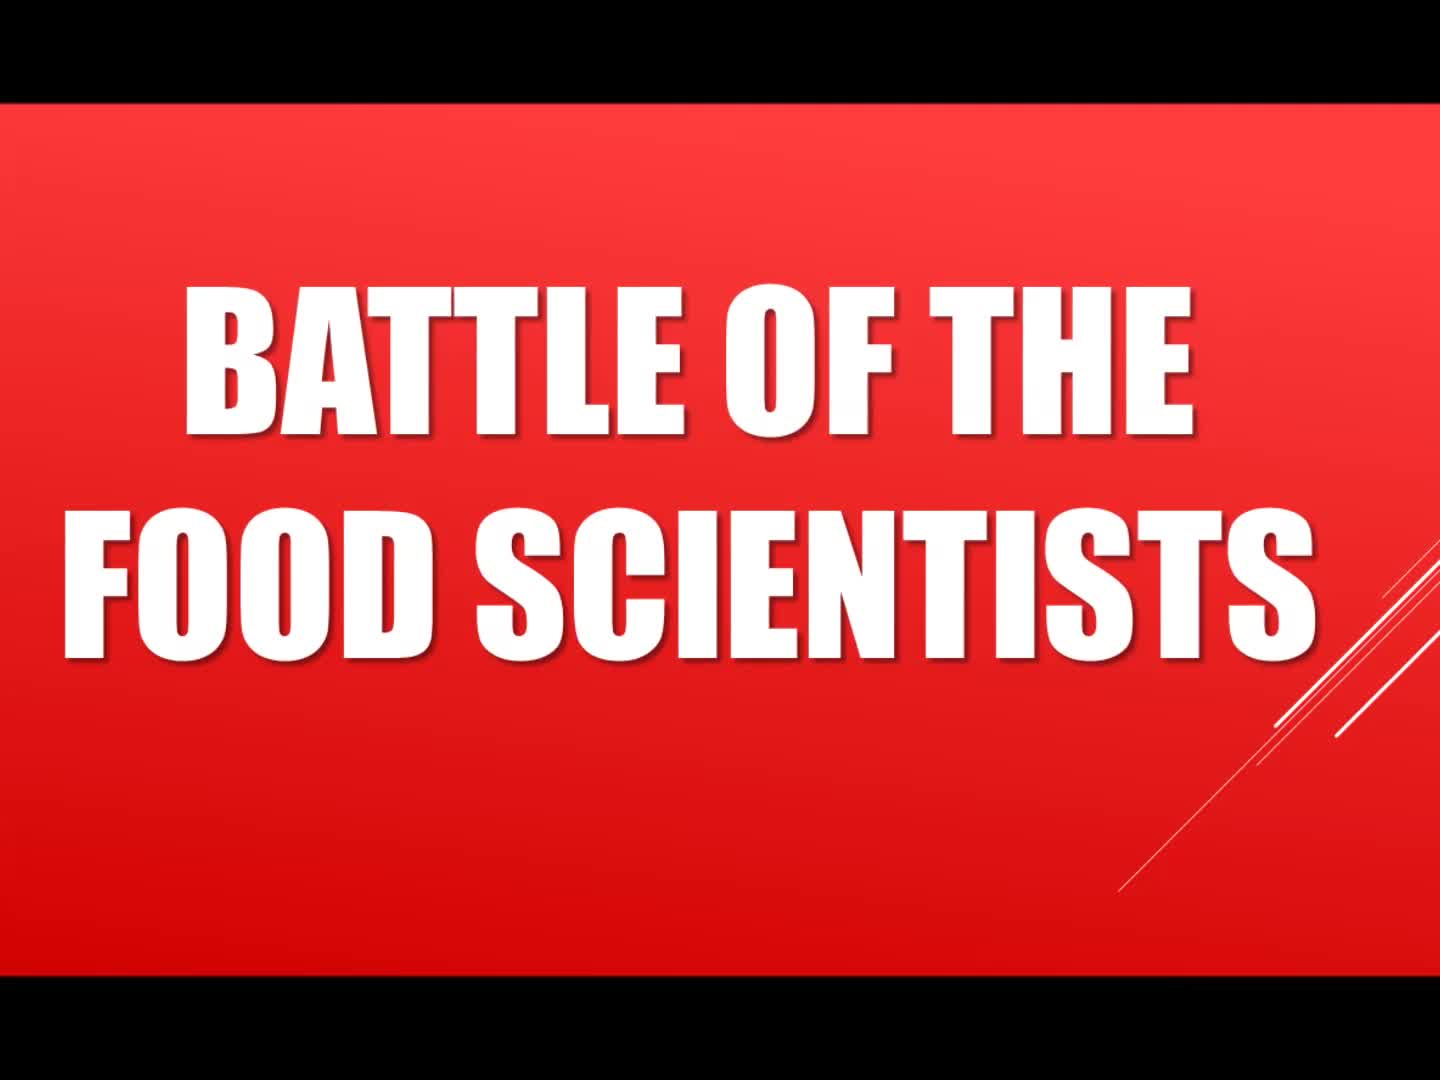 Battle of the Food Scientists